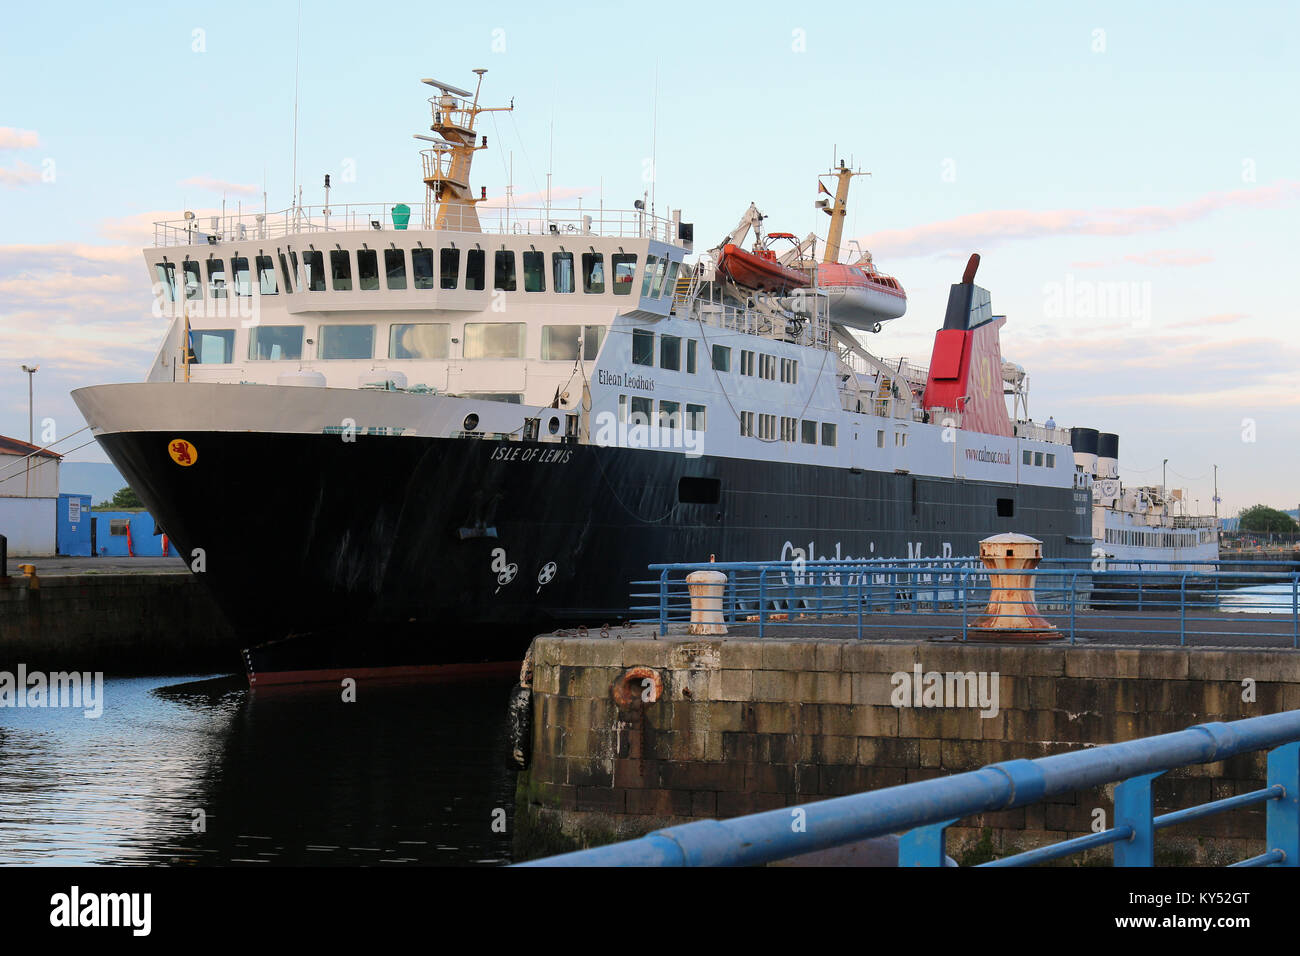 Caledonian MacBrayne roll-on / roll-off ferry, MV Isle of Lewis (Eilean Leòdhais), at James Watt Dock, Greenock, - Stock Image